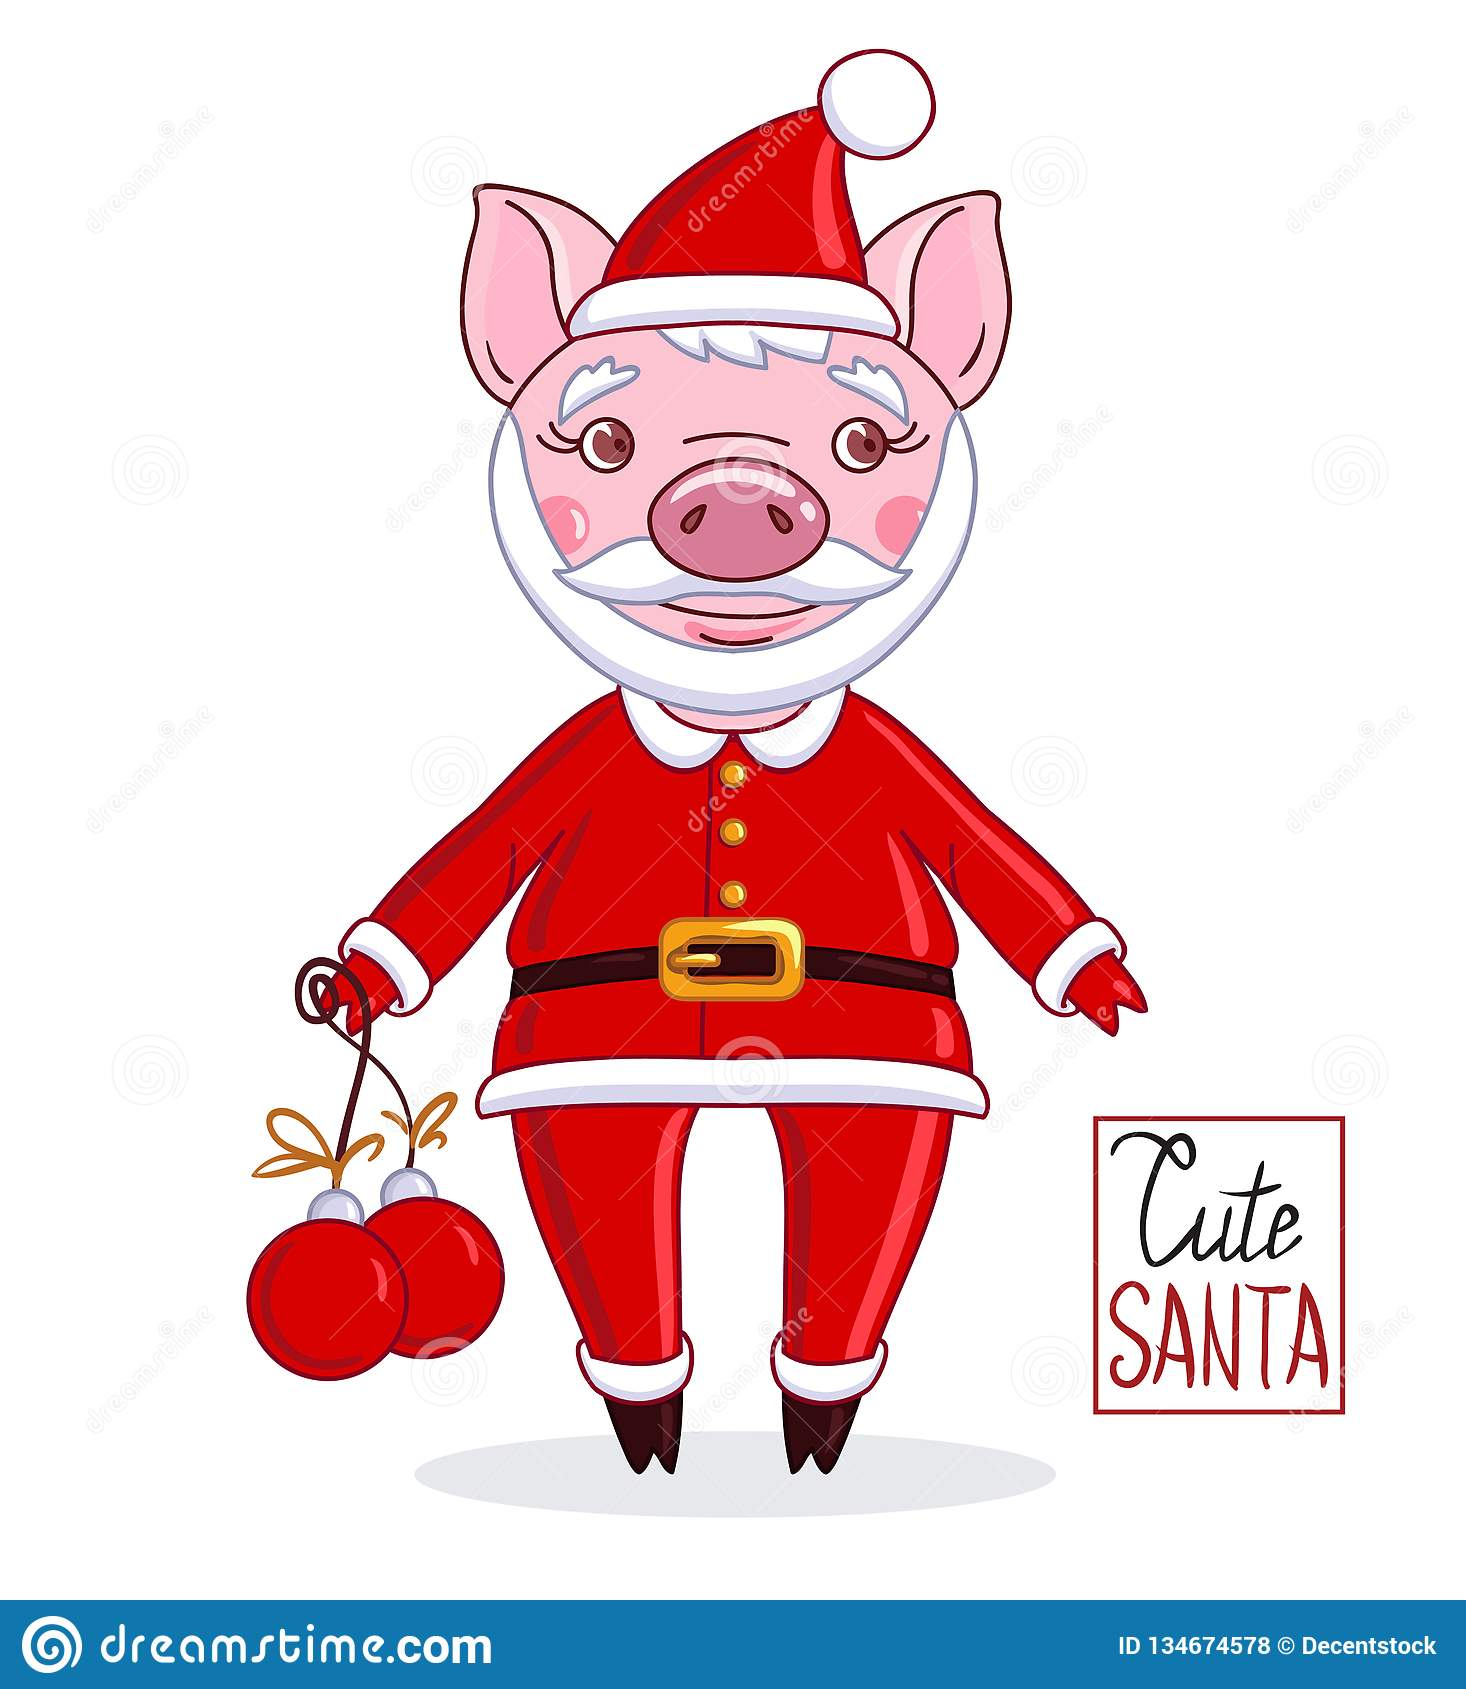 77aa5f52dc955 Cartoon character piglet in the role of Santa Claus in a red hat with a  beard and mustache